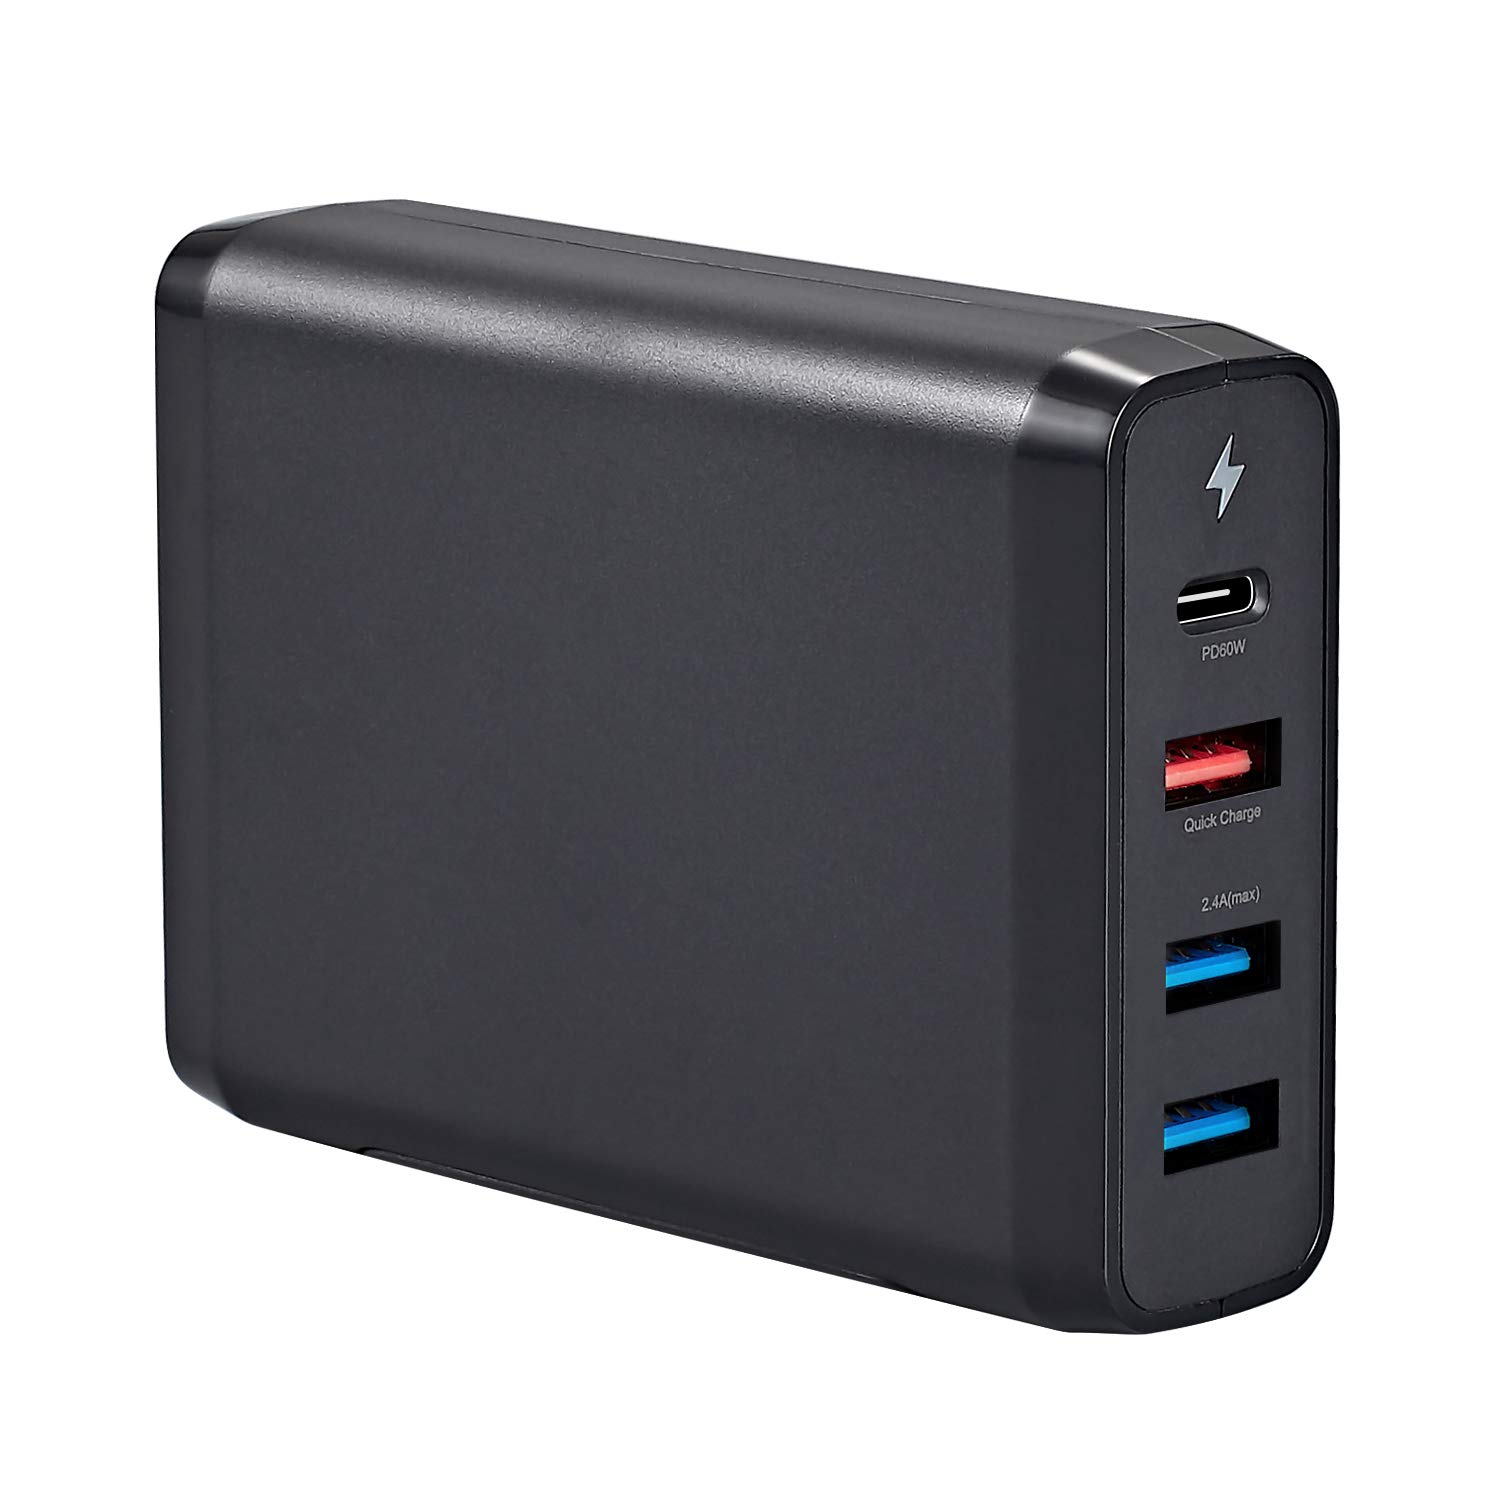 Runpower 75W USB Type C Travel Charger,with USB C PD 3.0 Fast Charge Port,for USB-C Laptops, MacBook, iPad Pro, iPhone, Galaxy, Pixel and More. (Black) by Runpower